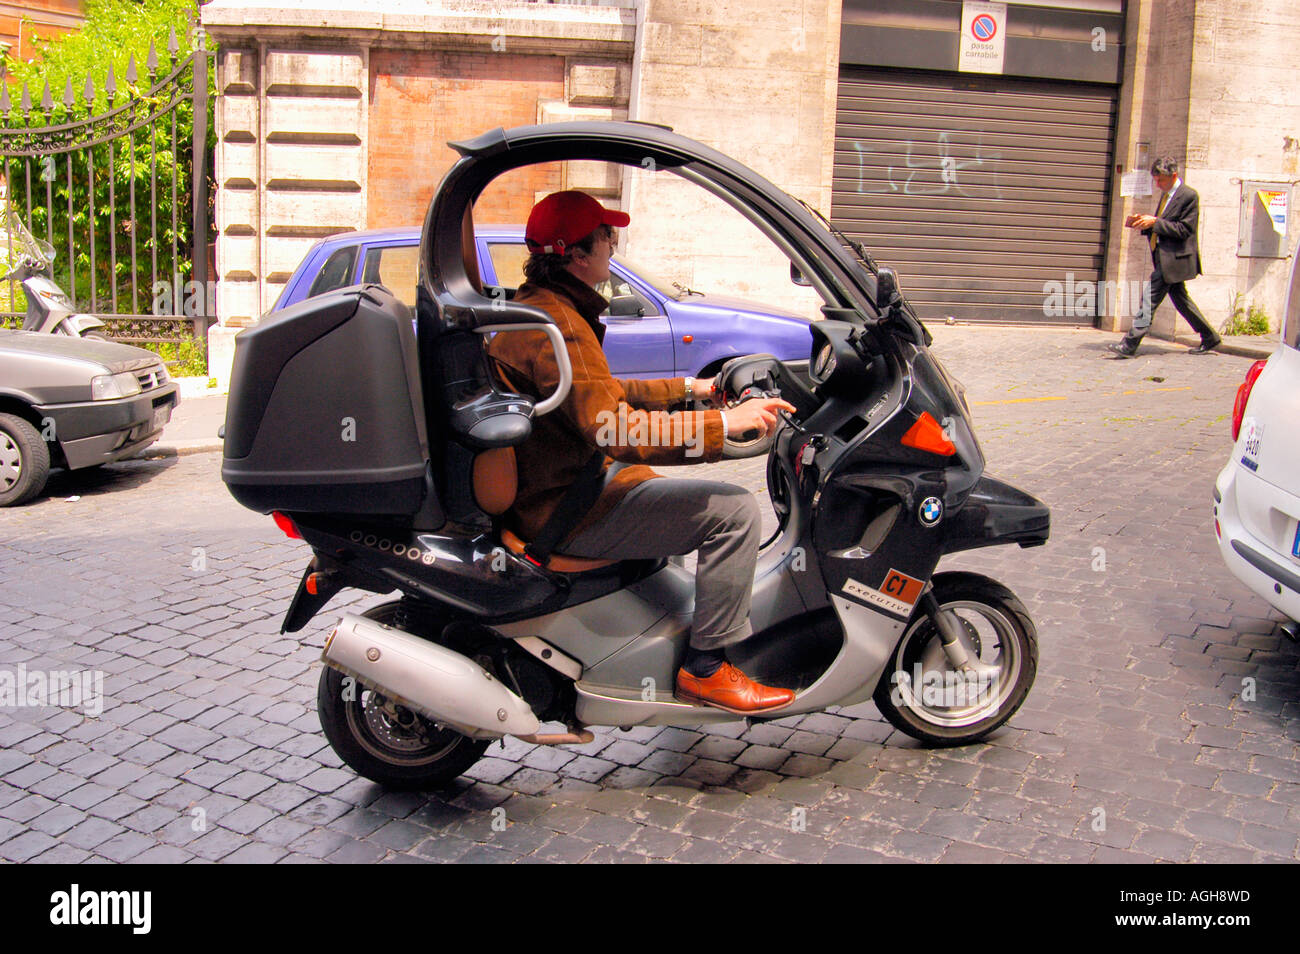 Moped Mit Dach